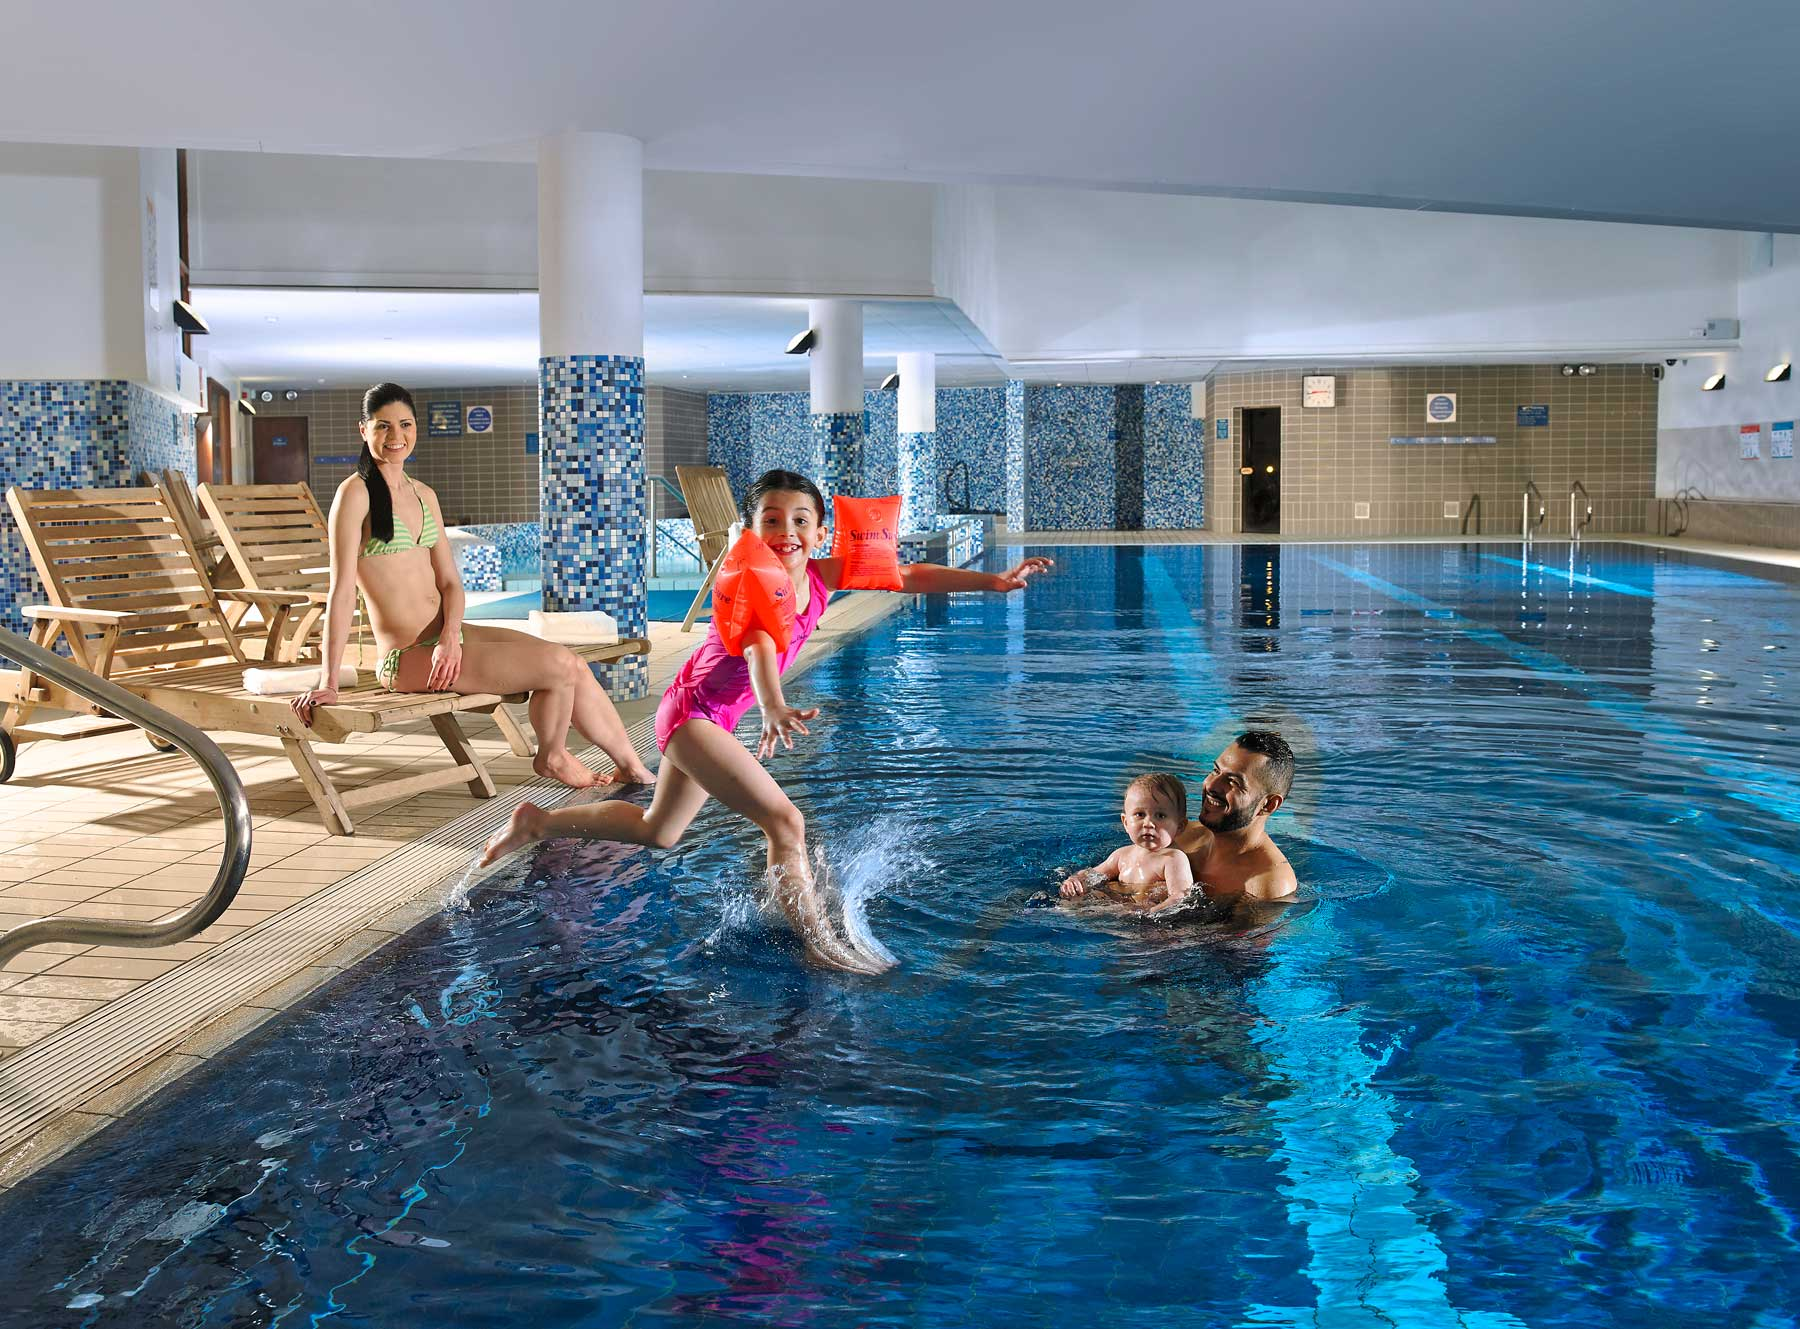 Liffey valley hotel in dublin 4 star clayton hotel - 4 star hotels in lisbon with swimming pool ...